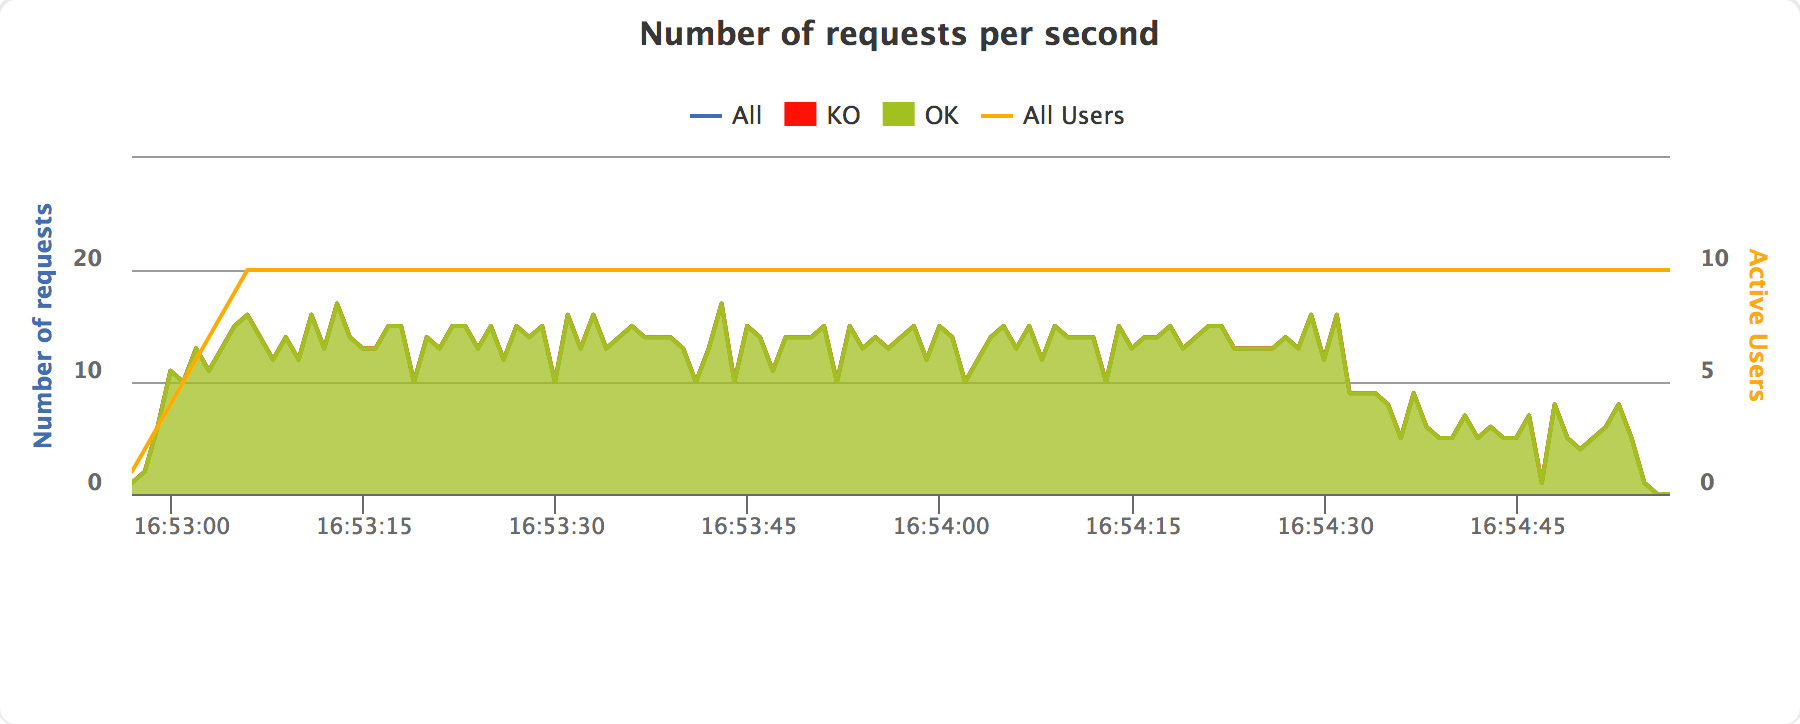 Number of requests per second